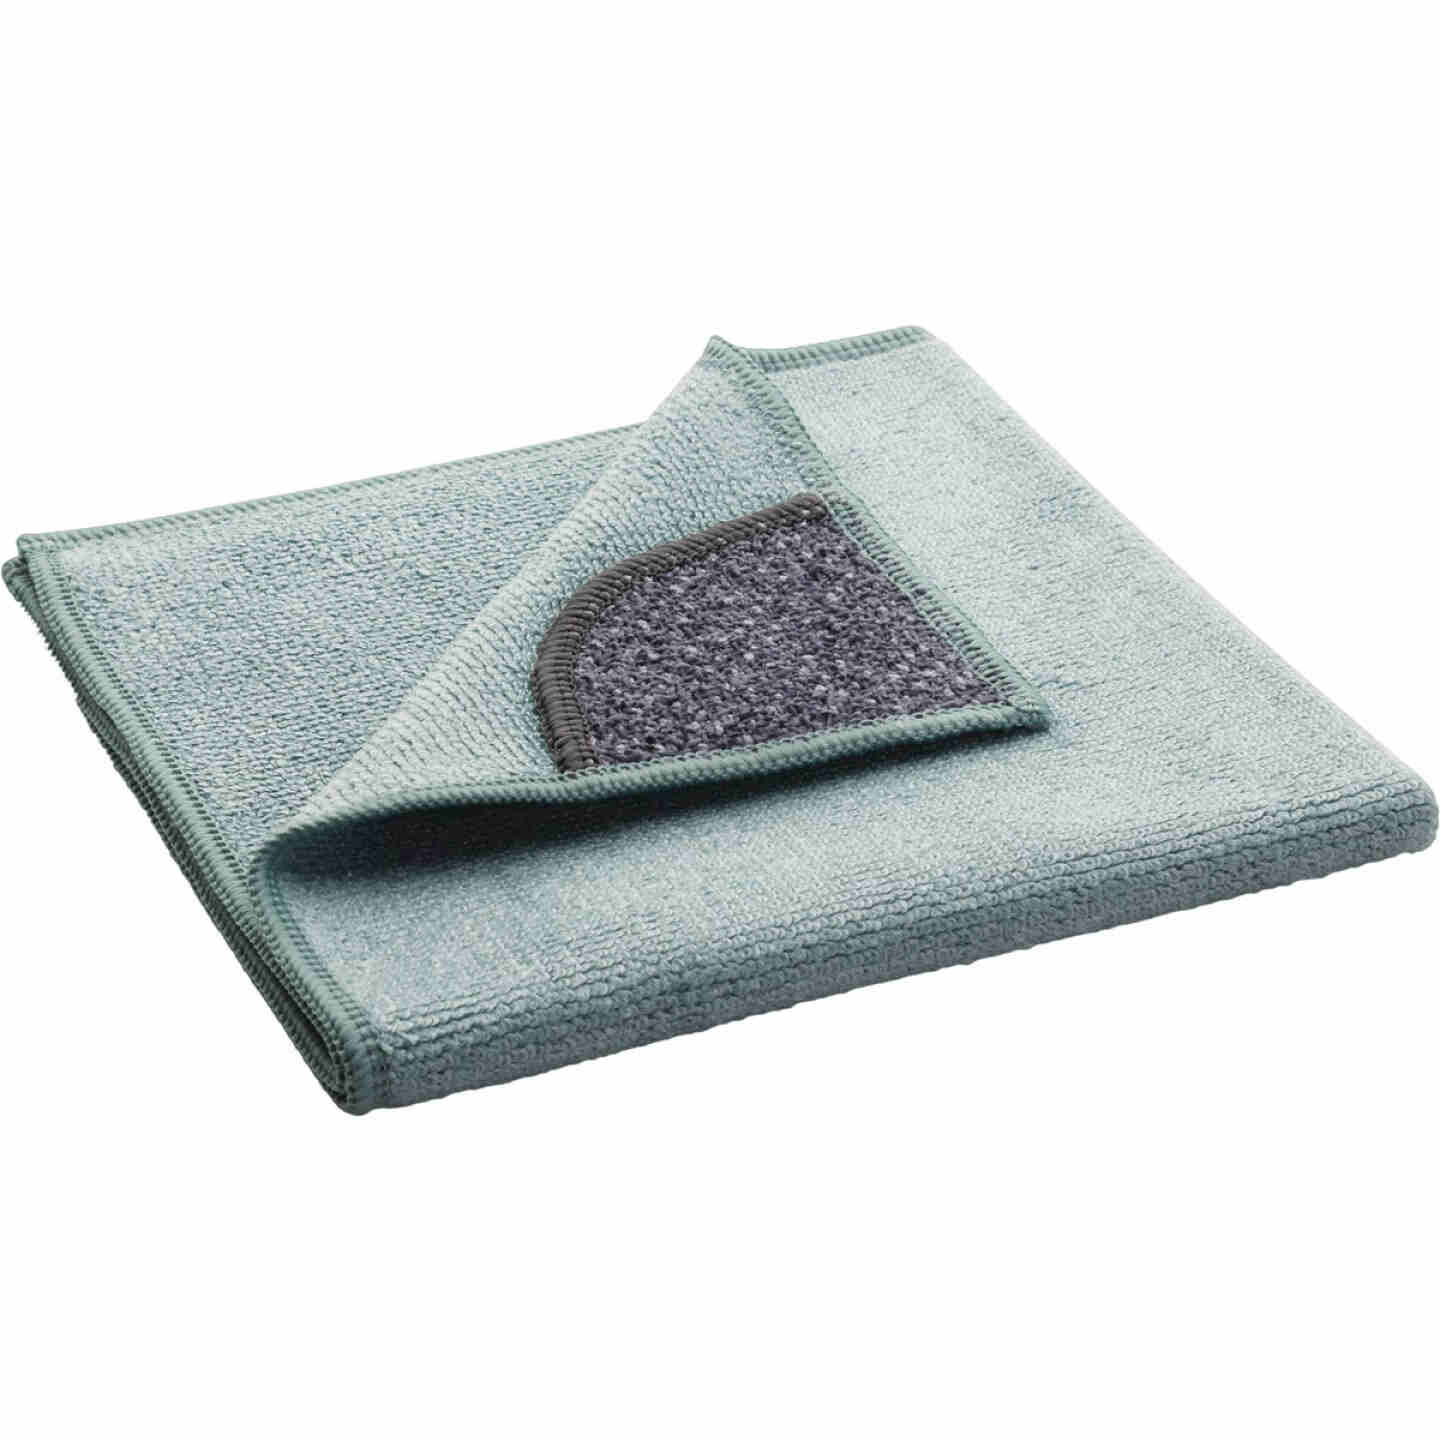 E-Cloth 12.5 In. x 12.5 In. Kitchen Cleaning Cloth Image 1